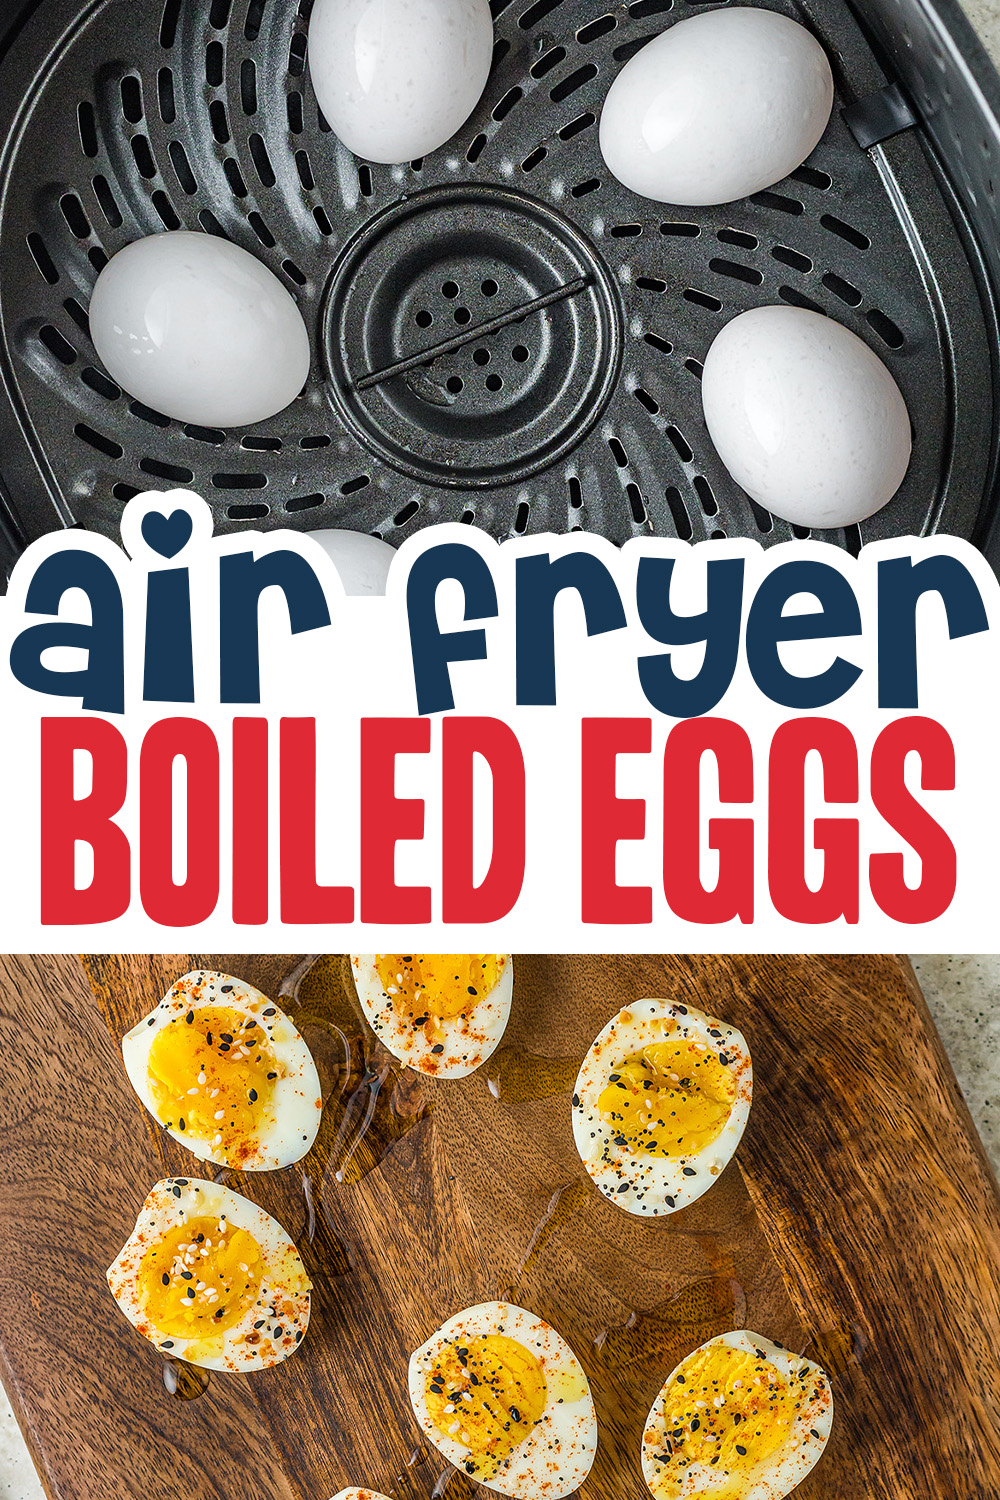 The easiest way to make boiled eggs is in your air fryer.  Period.